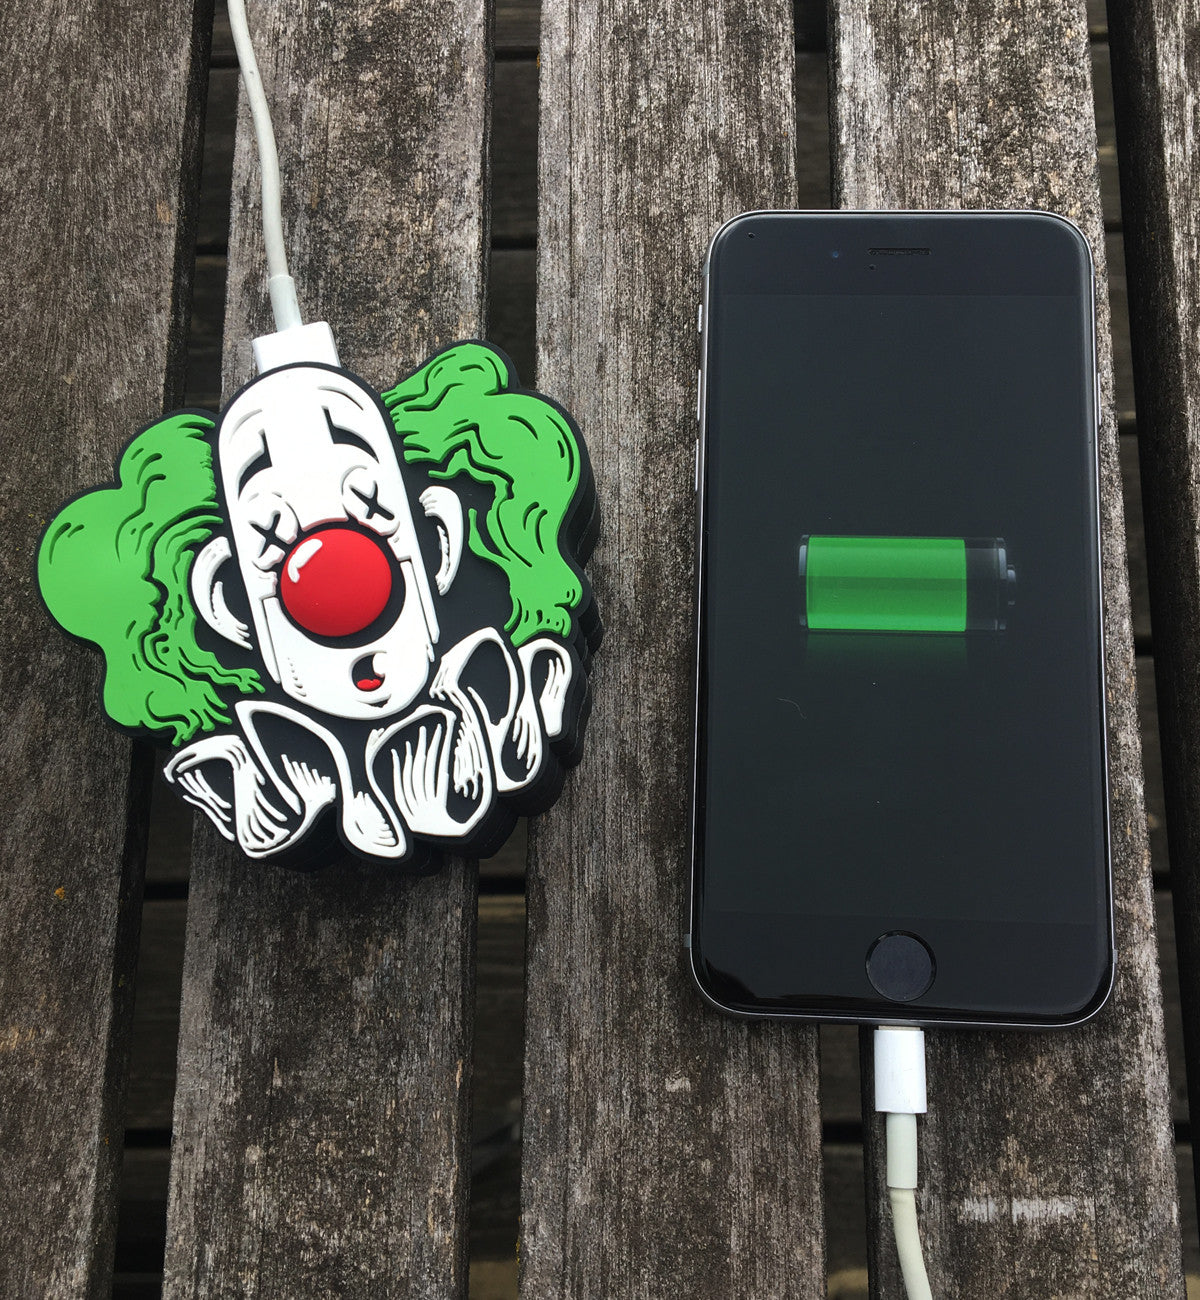 Atmosphere Sad Clown Charger